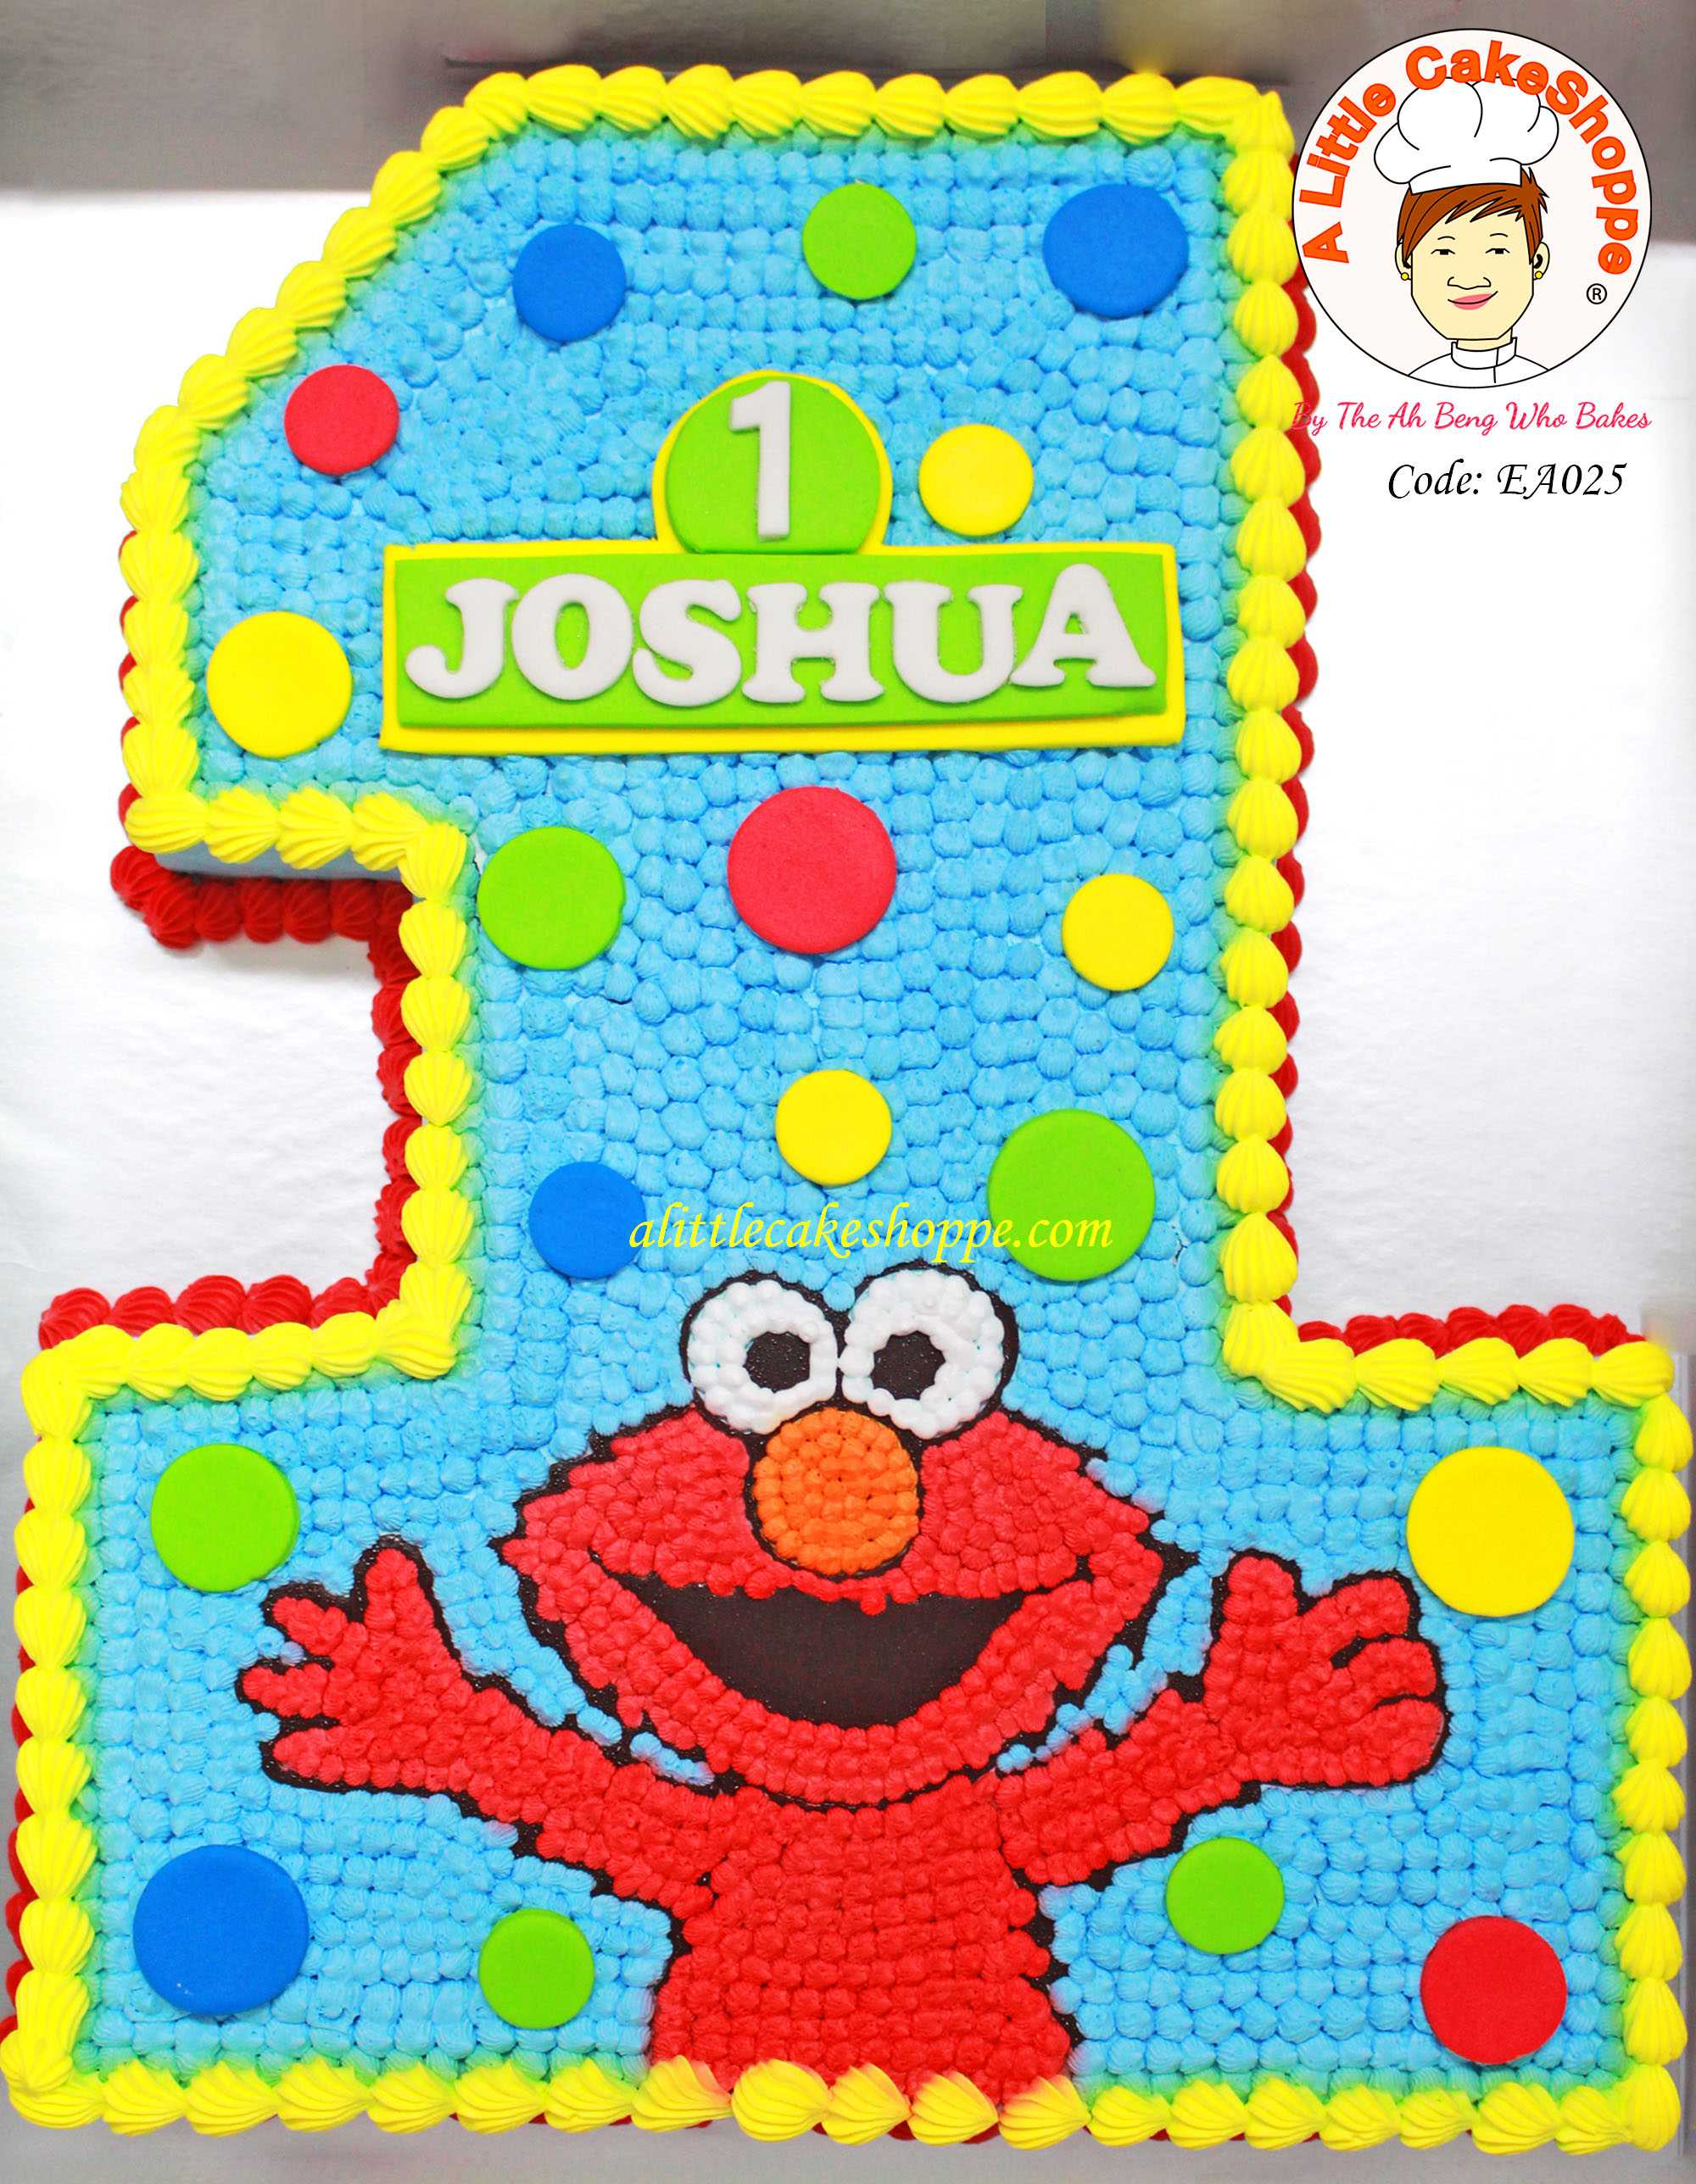 Best Customised Cake Shop Singapore custom cake 2D 3D birthday cake cupcakes desserts wedding corporate events anniversary 1st birthday 21st birthday fondant fresh cream buttercream cakes alittlecakeshoppe a little cake shoppe compliments review singapore bakers SG cake shop cakeshop ah beng who bakes sesame street elmo